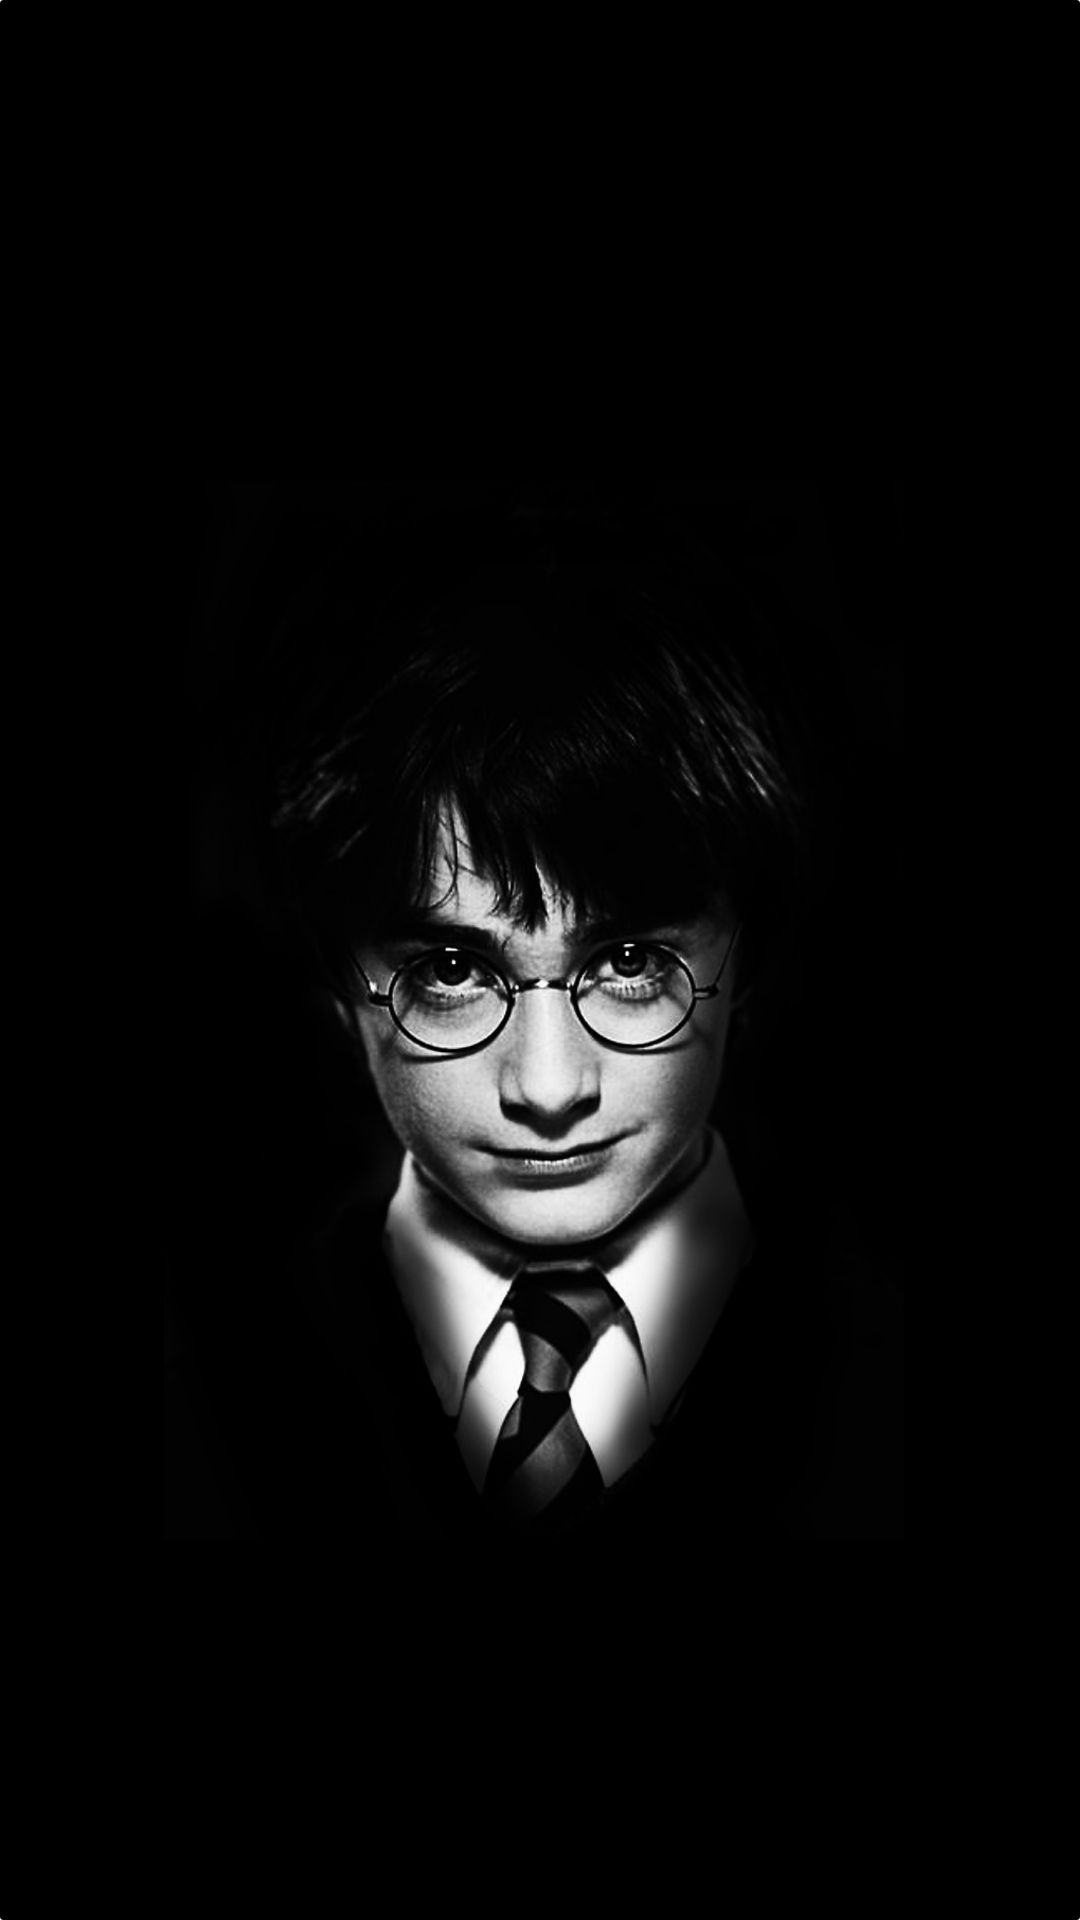 Wallpaper Harry Potter 75 Wallpapers \u2013 HD Wallpapers